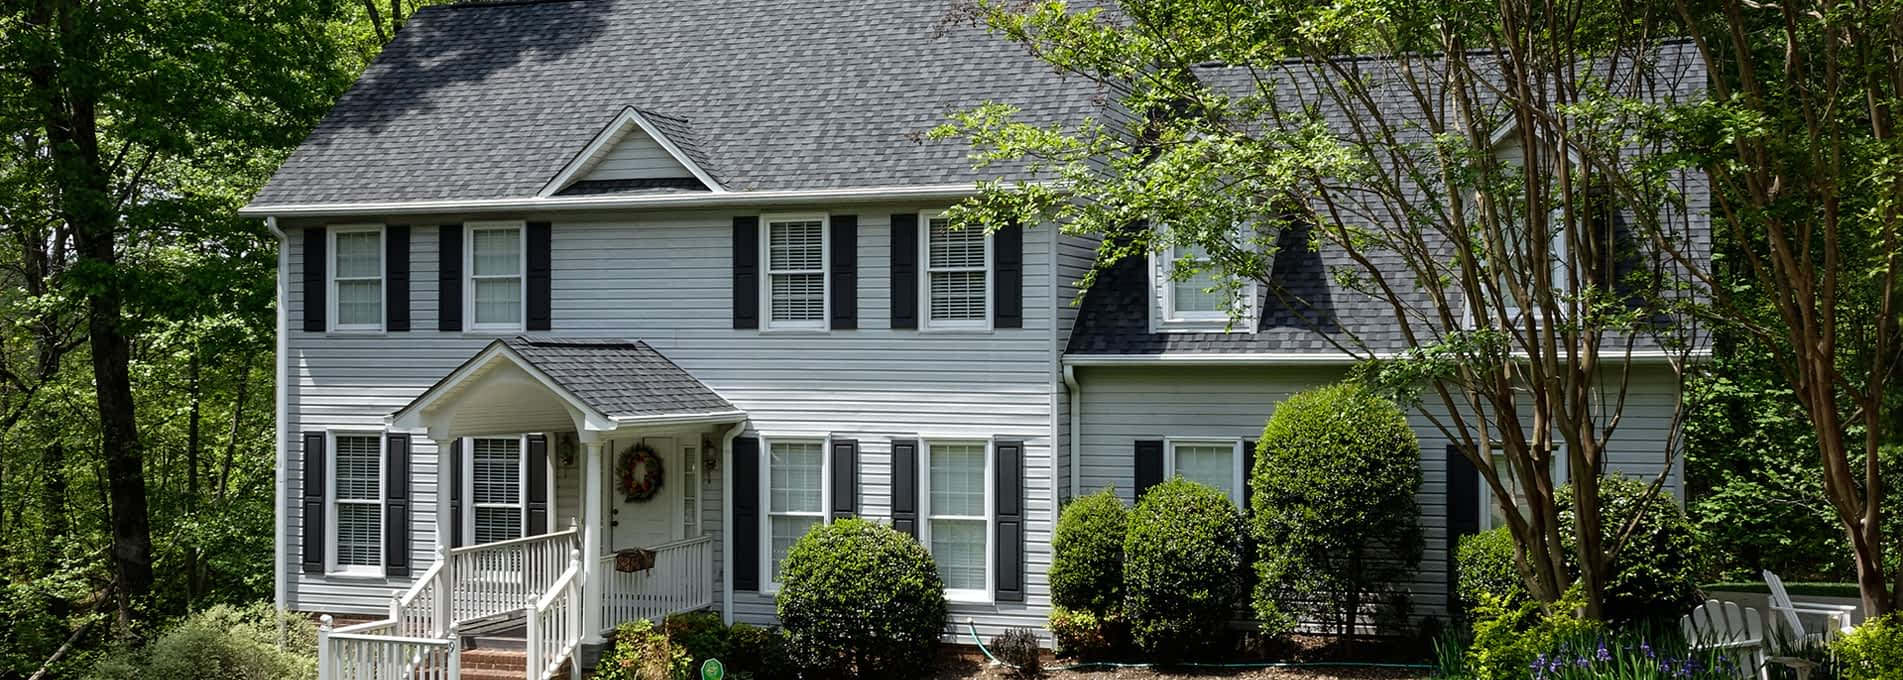 Roof Inspections Can Help You Avoid Expensive Repairs